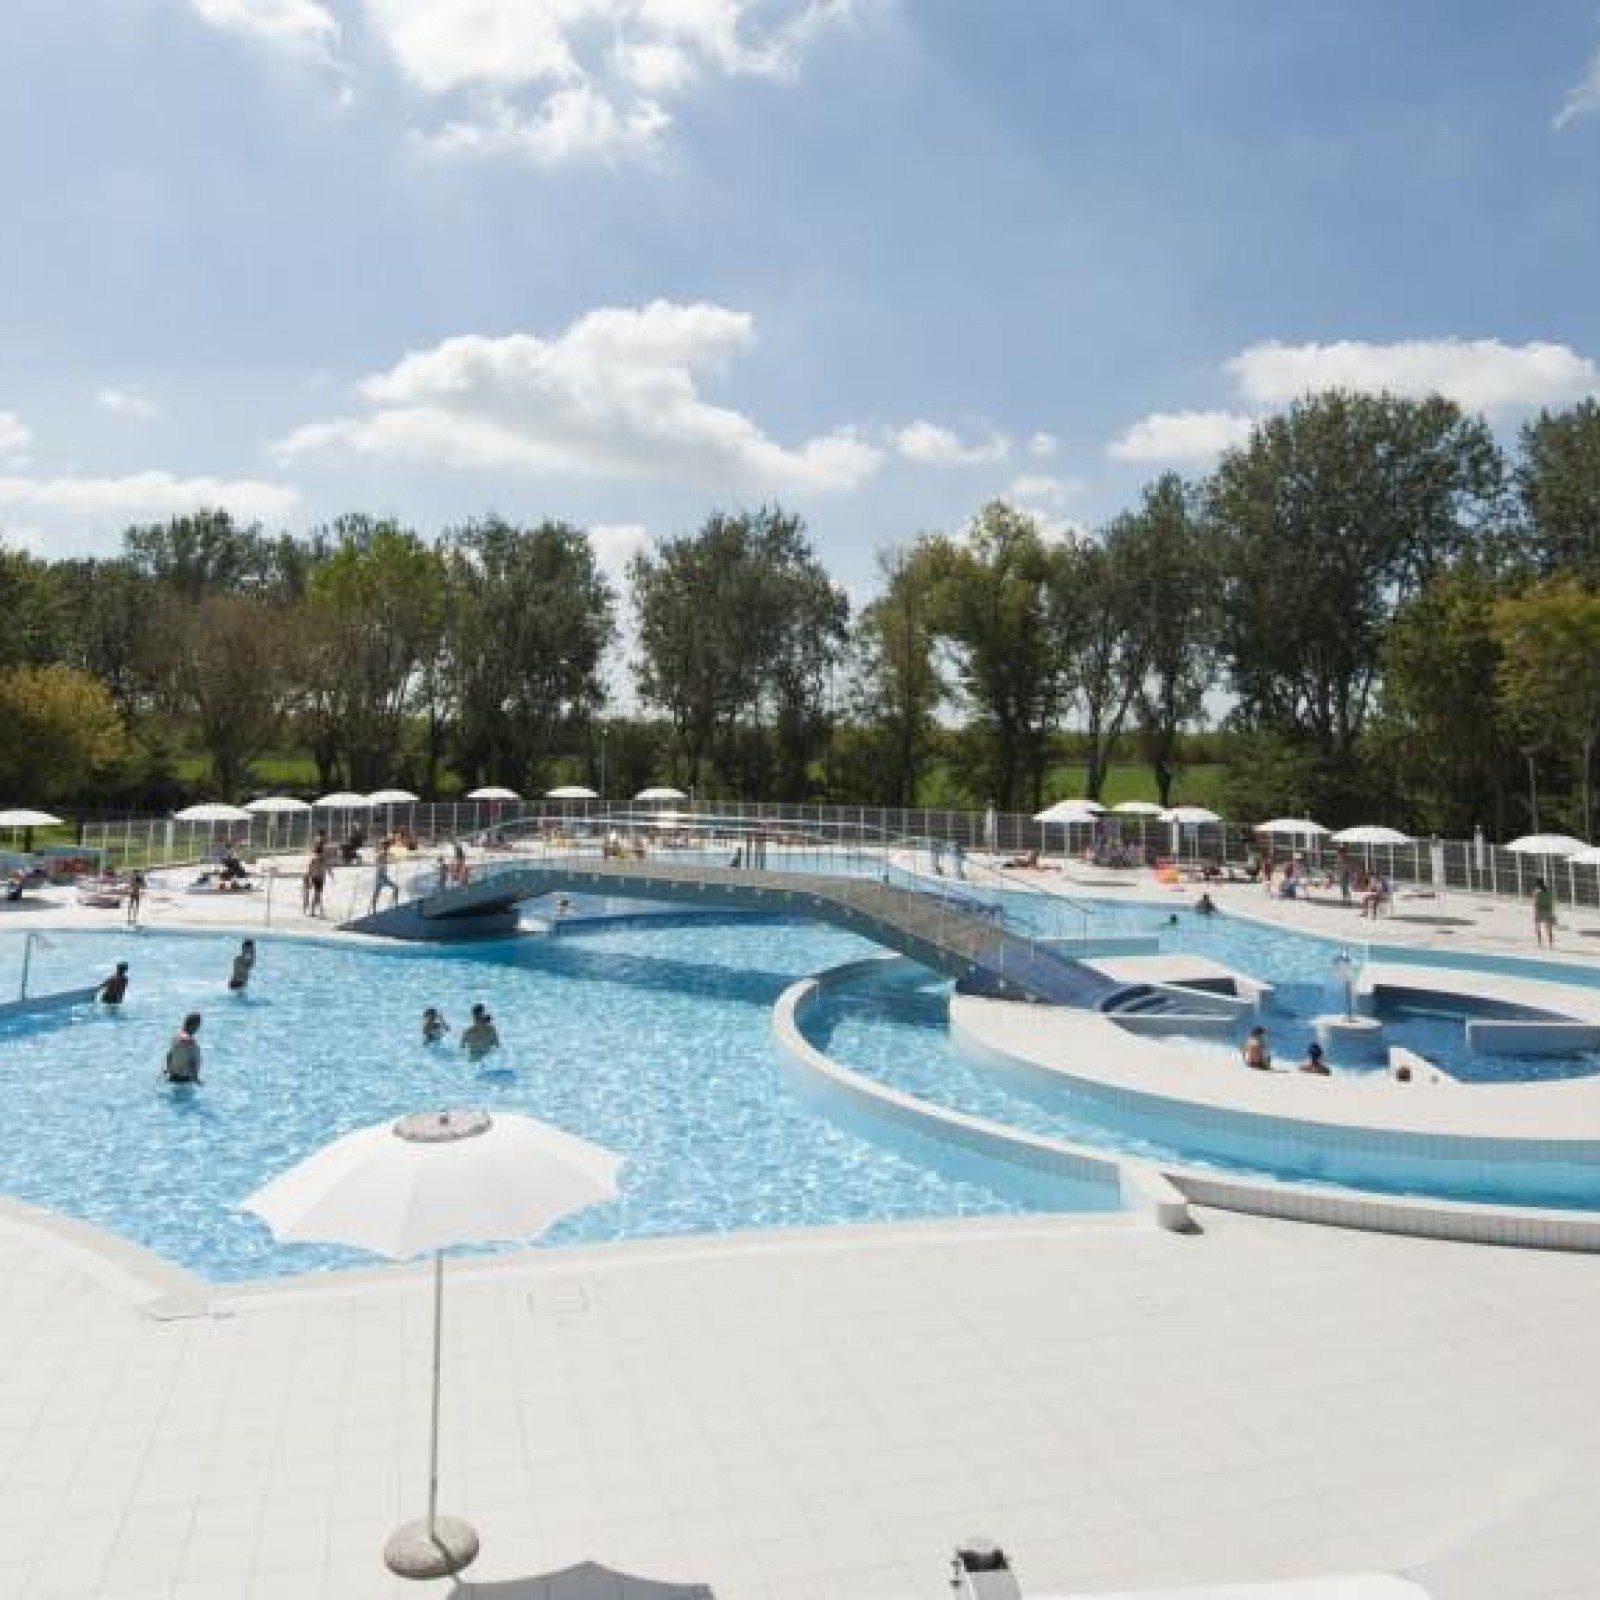 Pool For Camping And Hotel